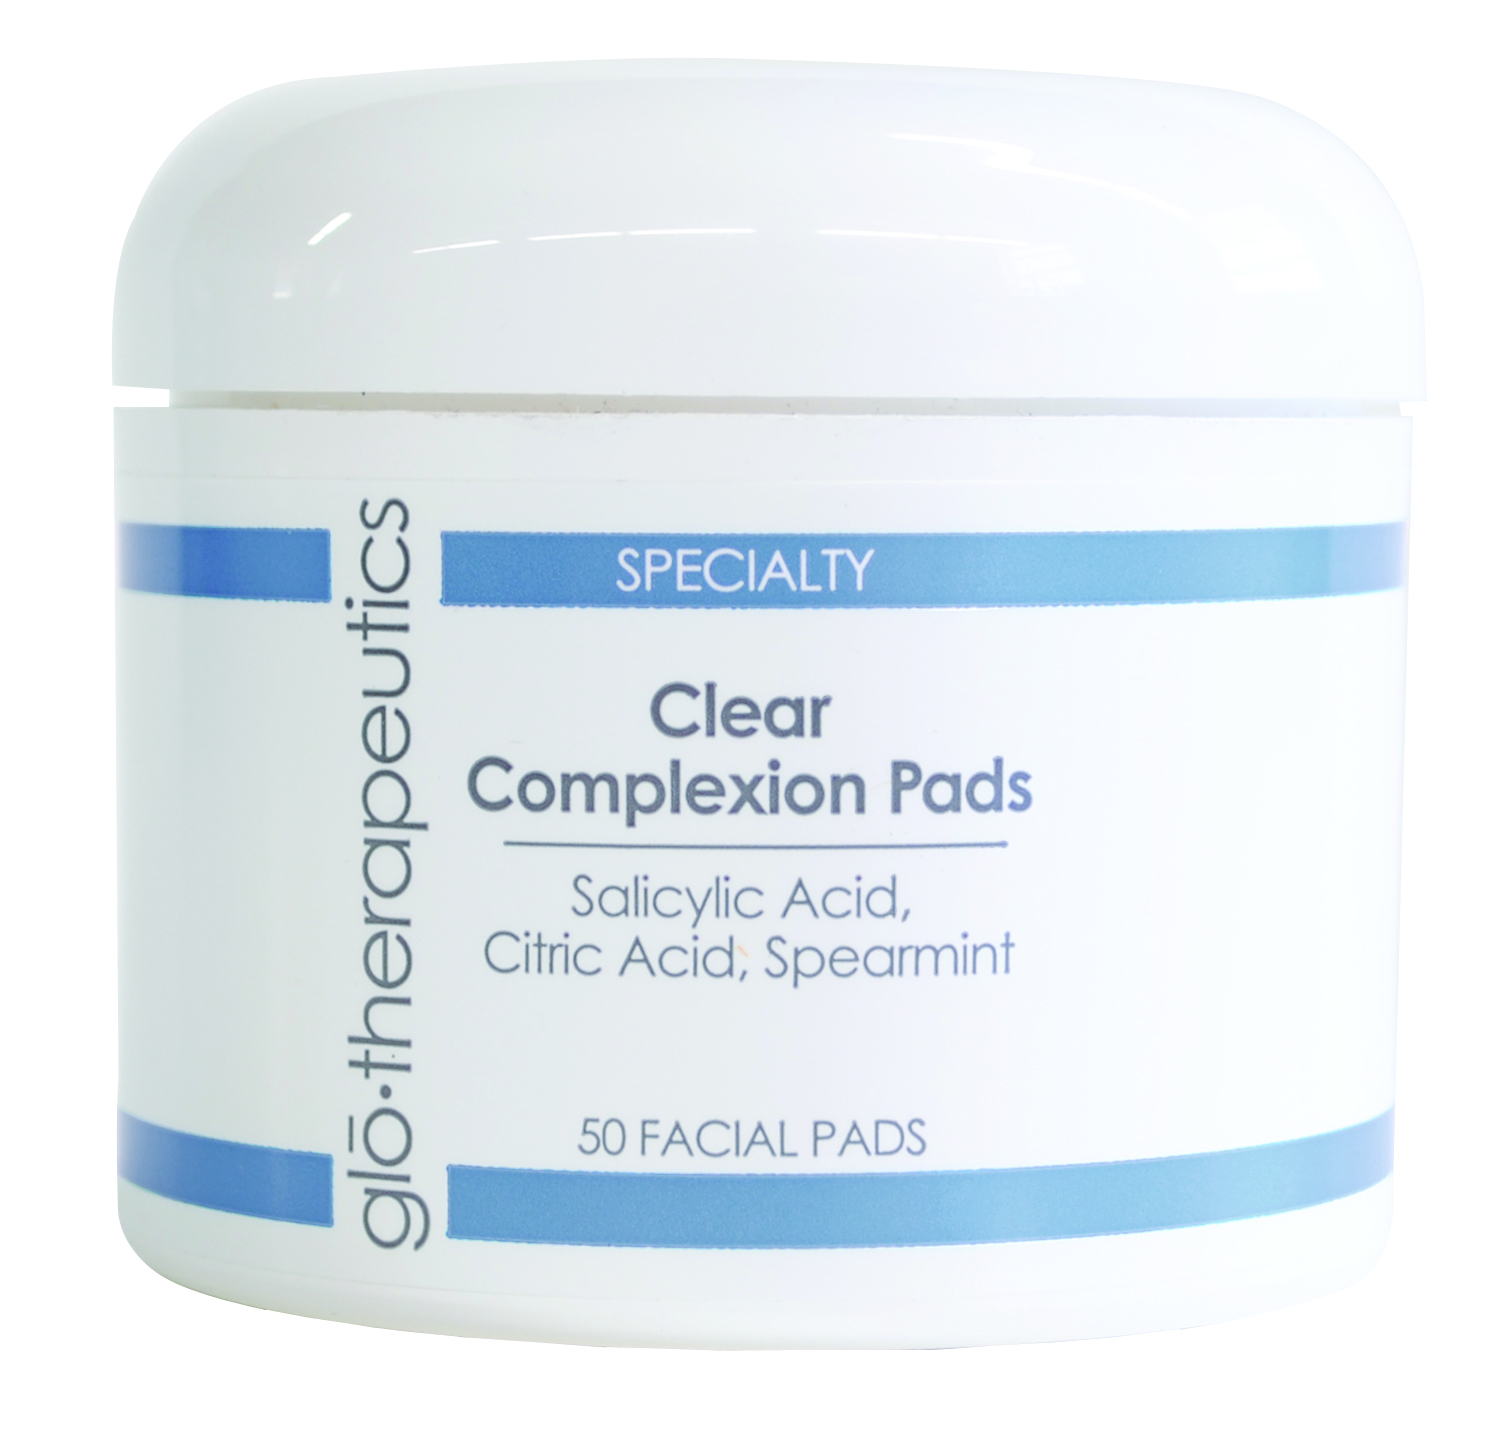 Clear Complexion Pads.jpg